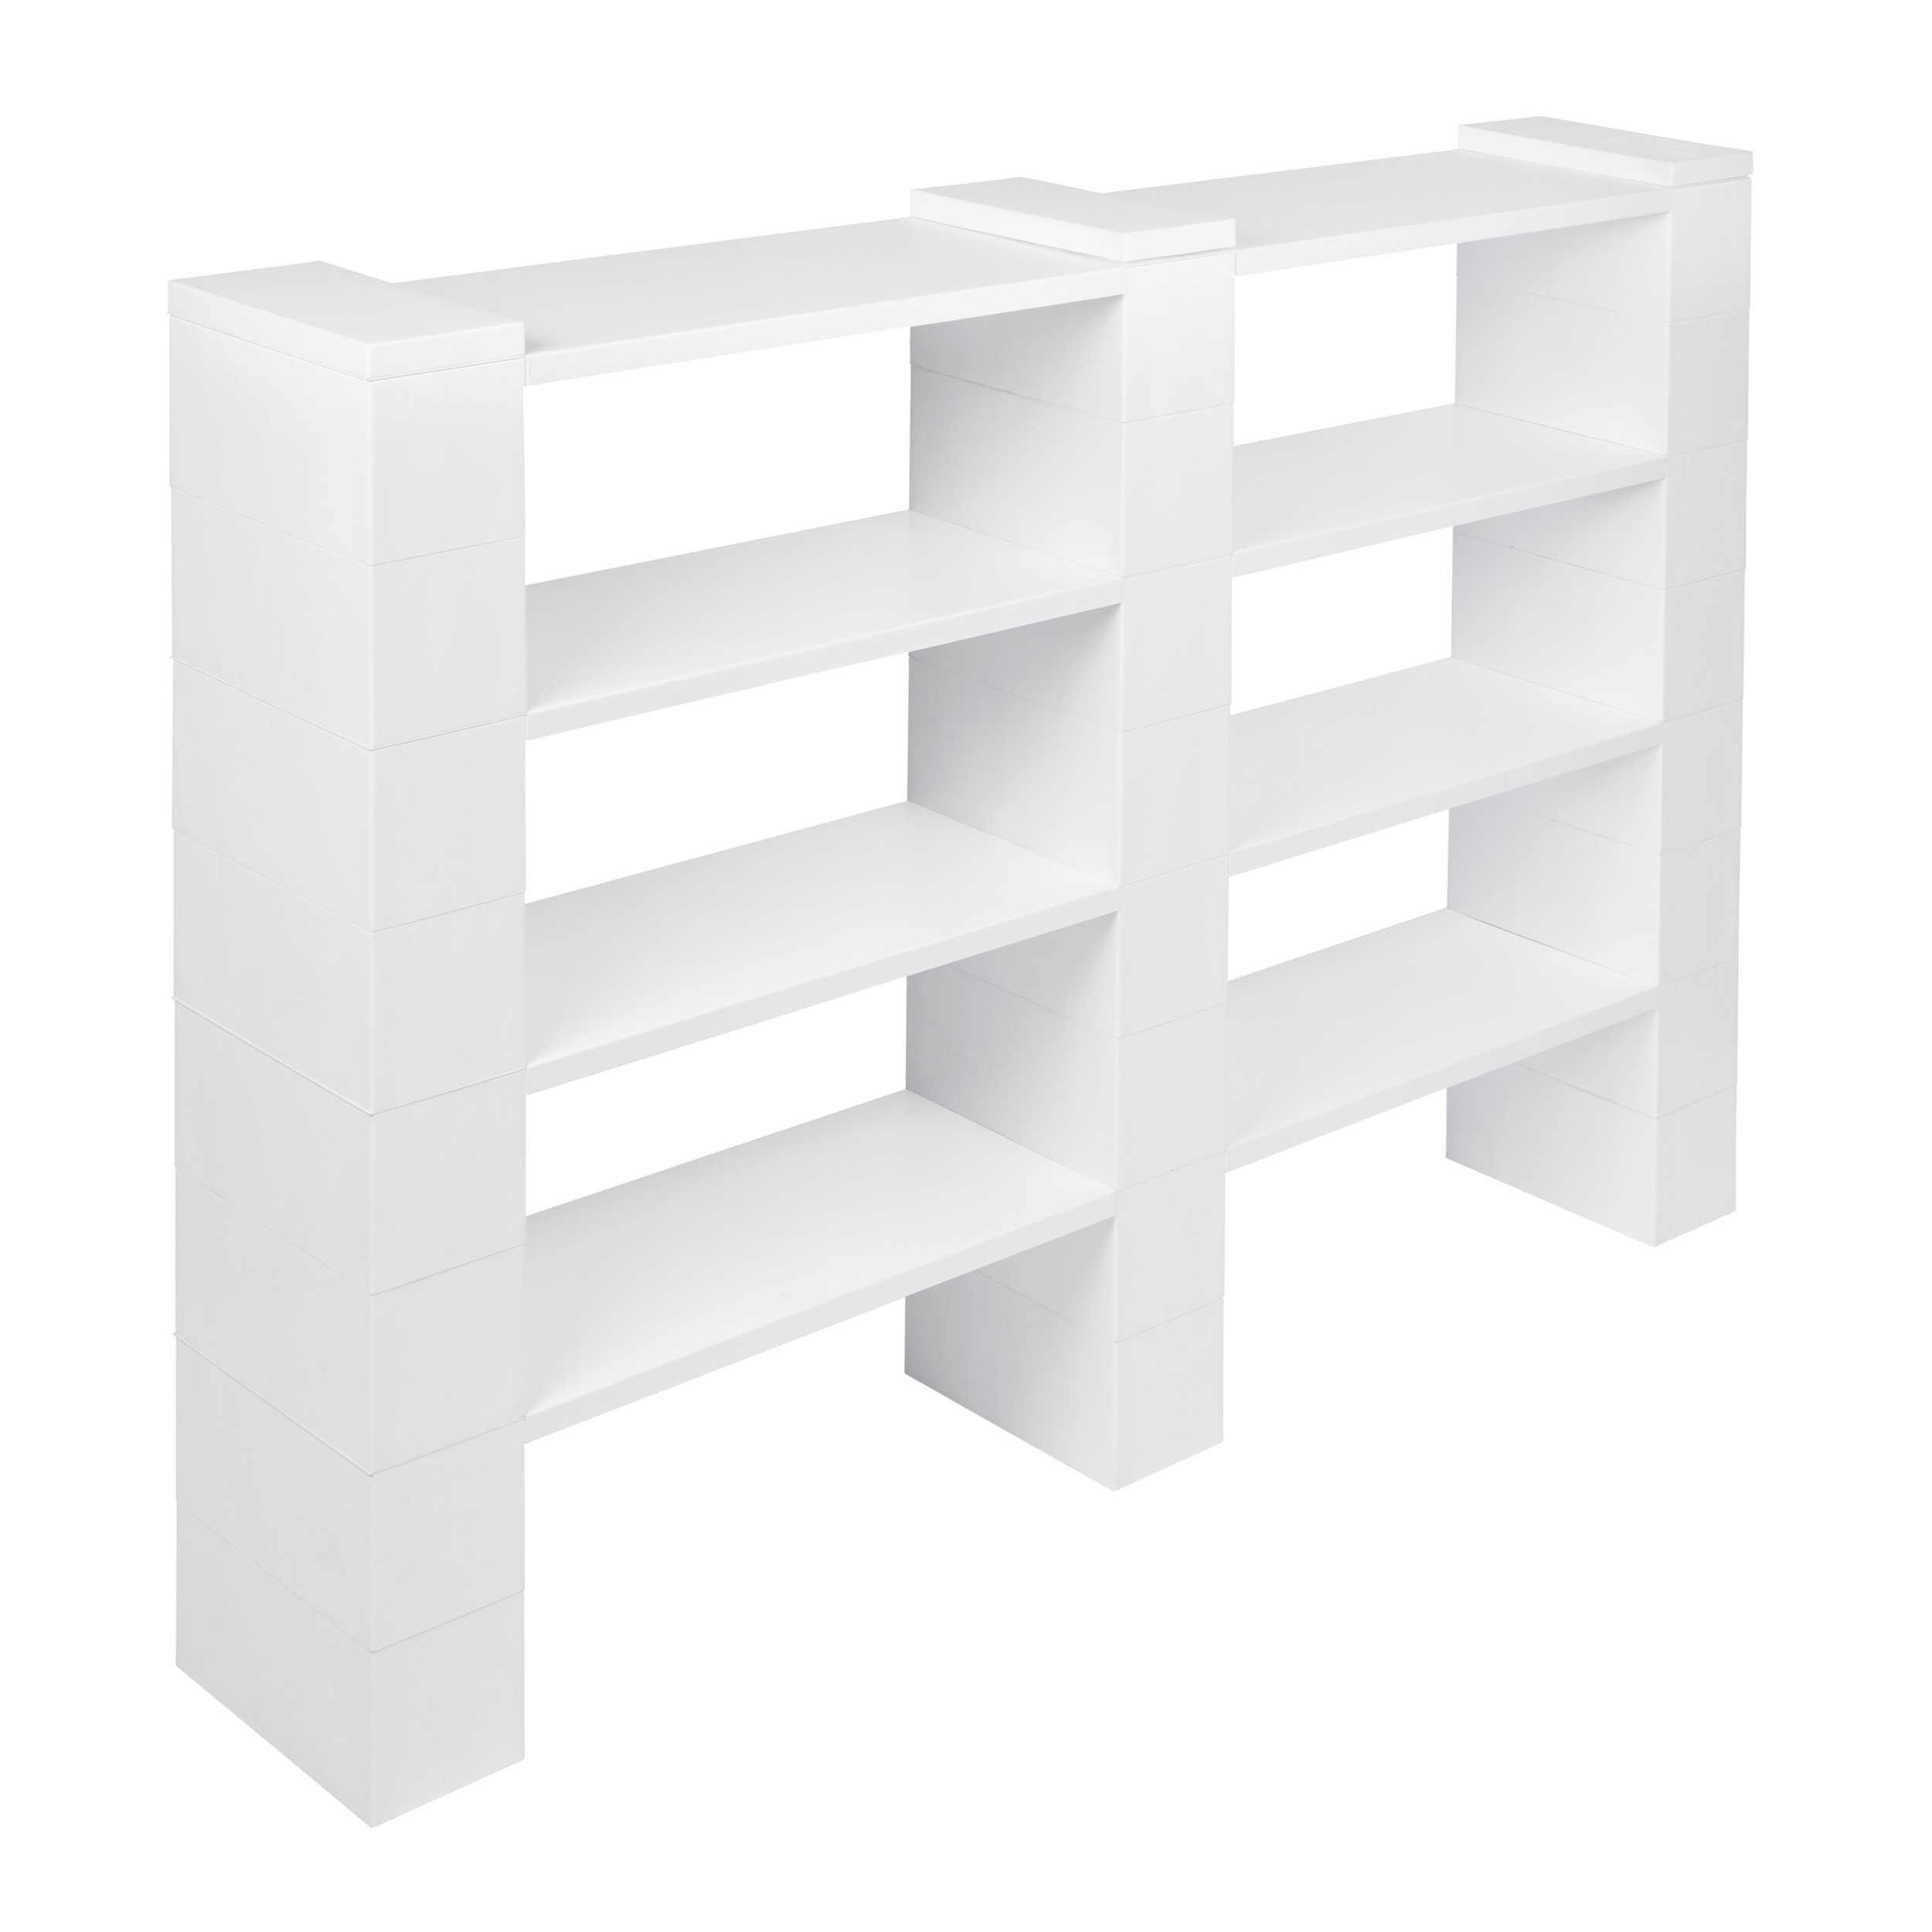 "4 Level, Double Shelf, 72""W EverBlock Shelving Kit"